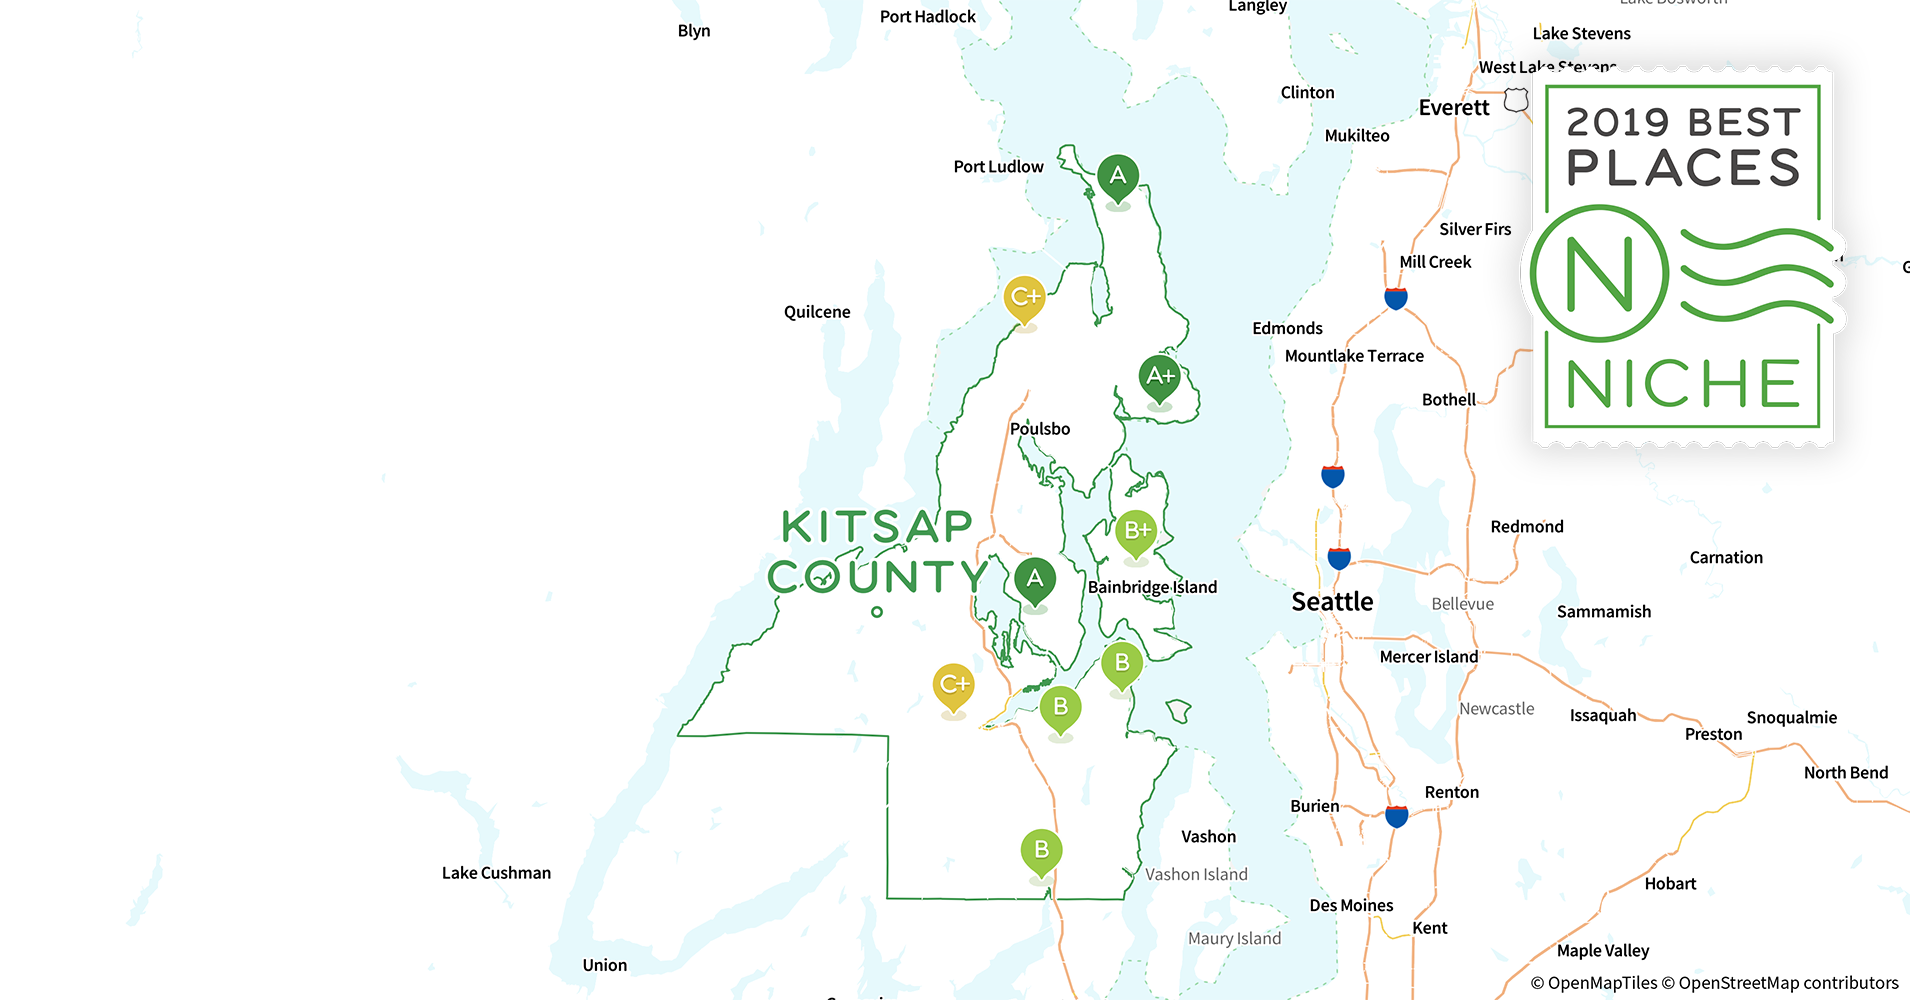 2019 Best Places to Live in Kitsap County, WA - Niche Kitsap County Washington State Map on edmonds washington state map, anacortes washington state map, moses lake washington state map, tukwila washington state map, burien washington state map, olympic national park washington state map, ellensburg washington state map, douglas county washington state map, jefferson county washington state map, city of everett washington state map, snohomish county washington state map, university of washington washington state map, south king county washington state map, united states washington state map, hood canal washington state map, okanogan county washington state map, port angeles washington state map, mount rainier washington state map, richland washington state map, federal way washington state map,